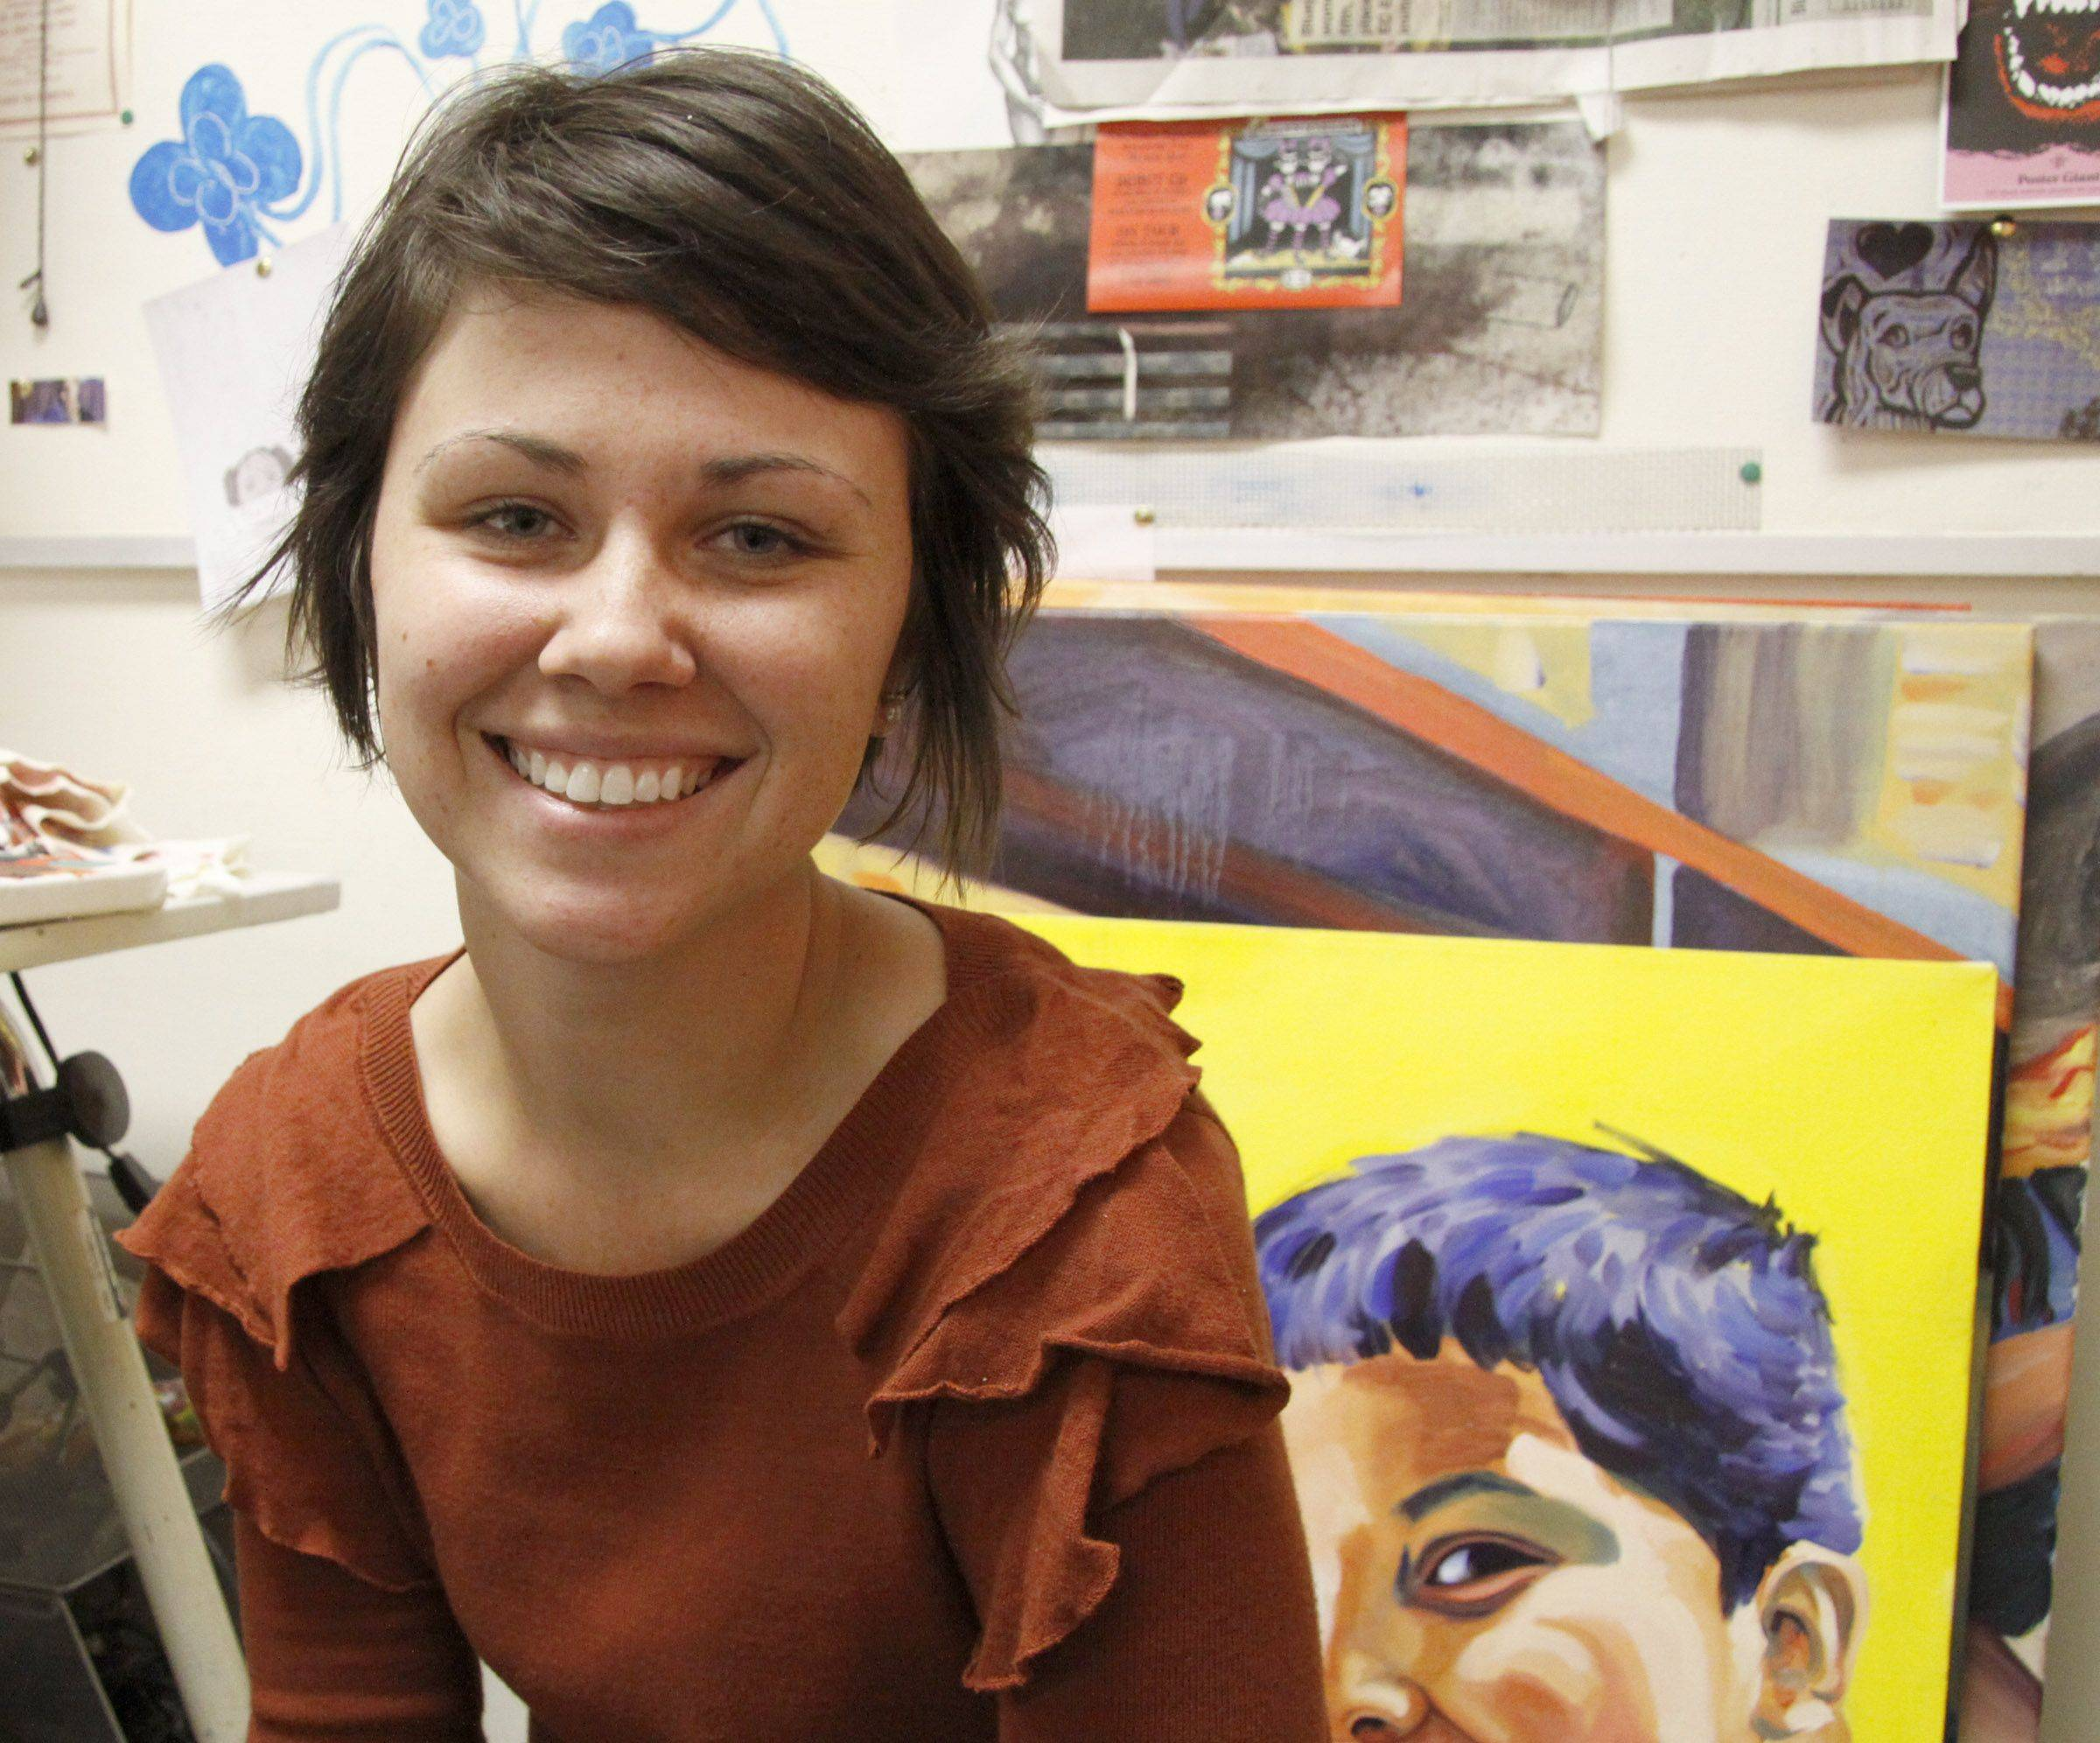 Elmhurst College student uses art to increase awareness for food bank